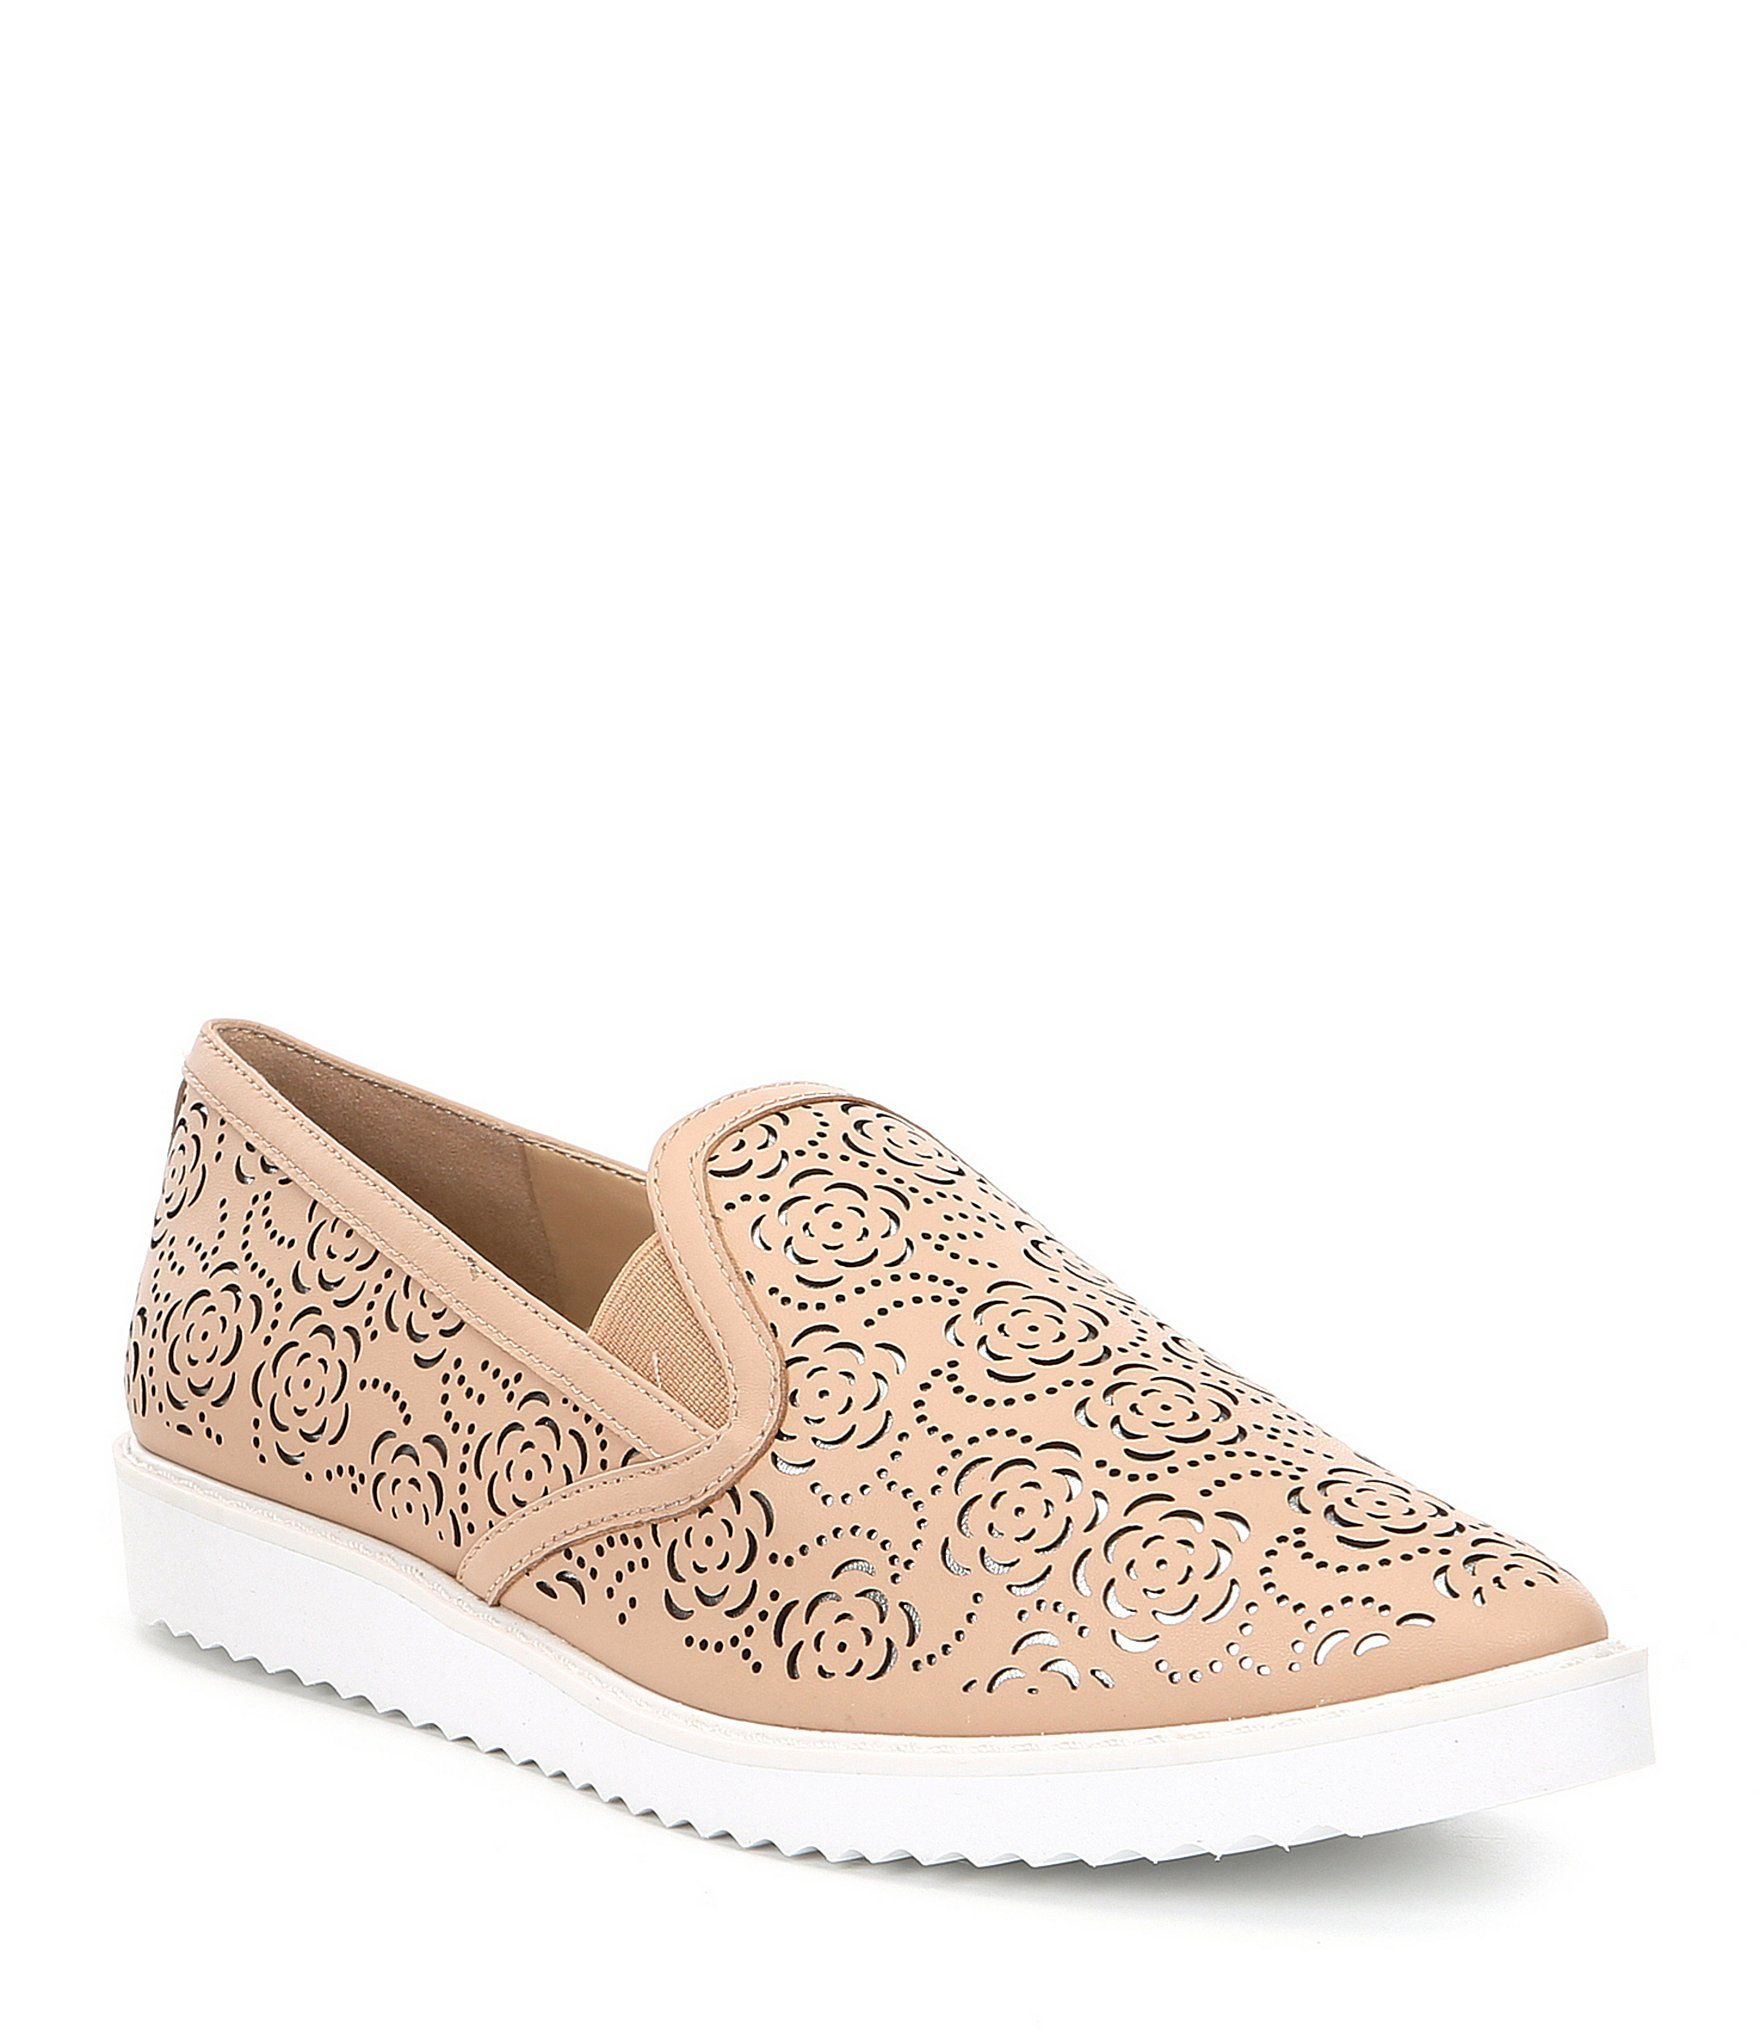 6901d159722 Steve Madden Ecentrcq Quilted Slip-On Sneakers in 2019